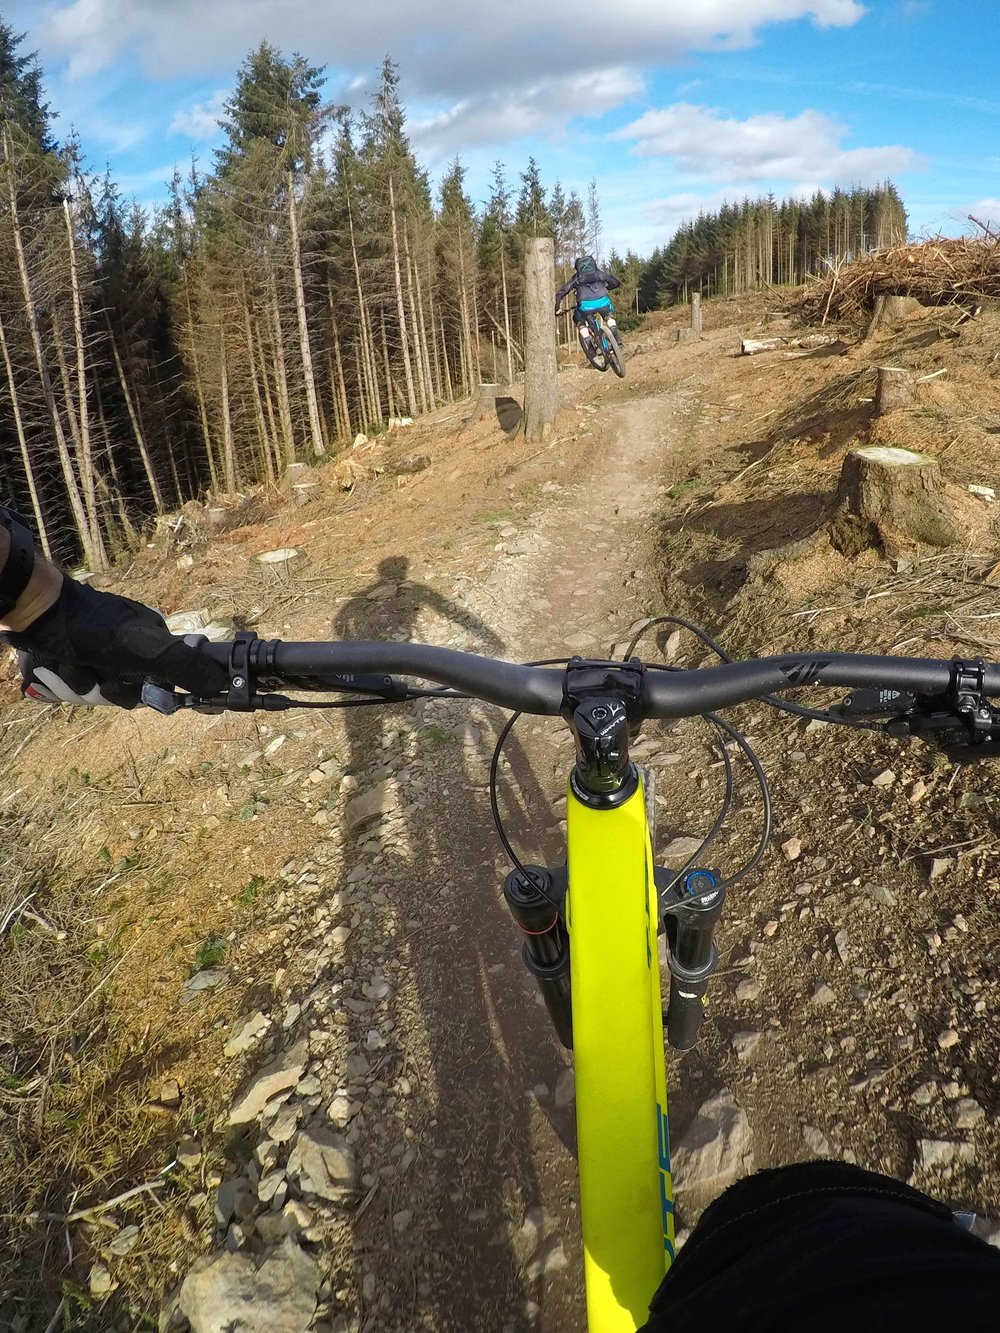 The trail follows the tree line for the first section, with jumps and berms -